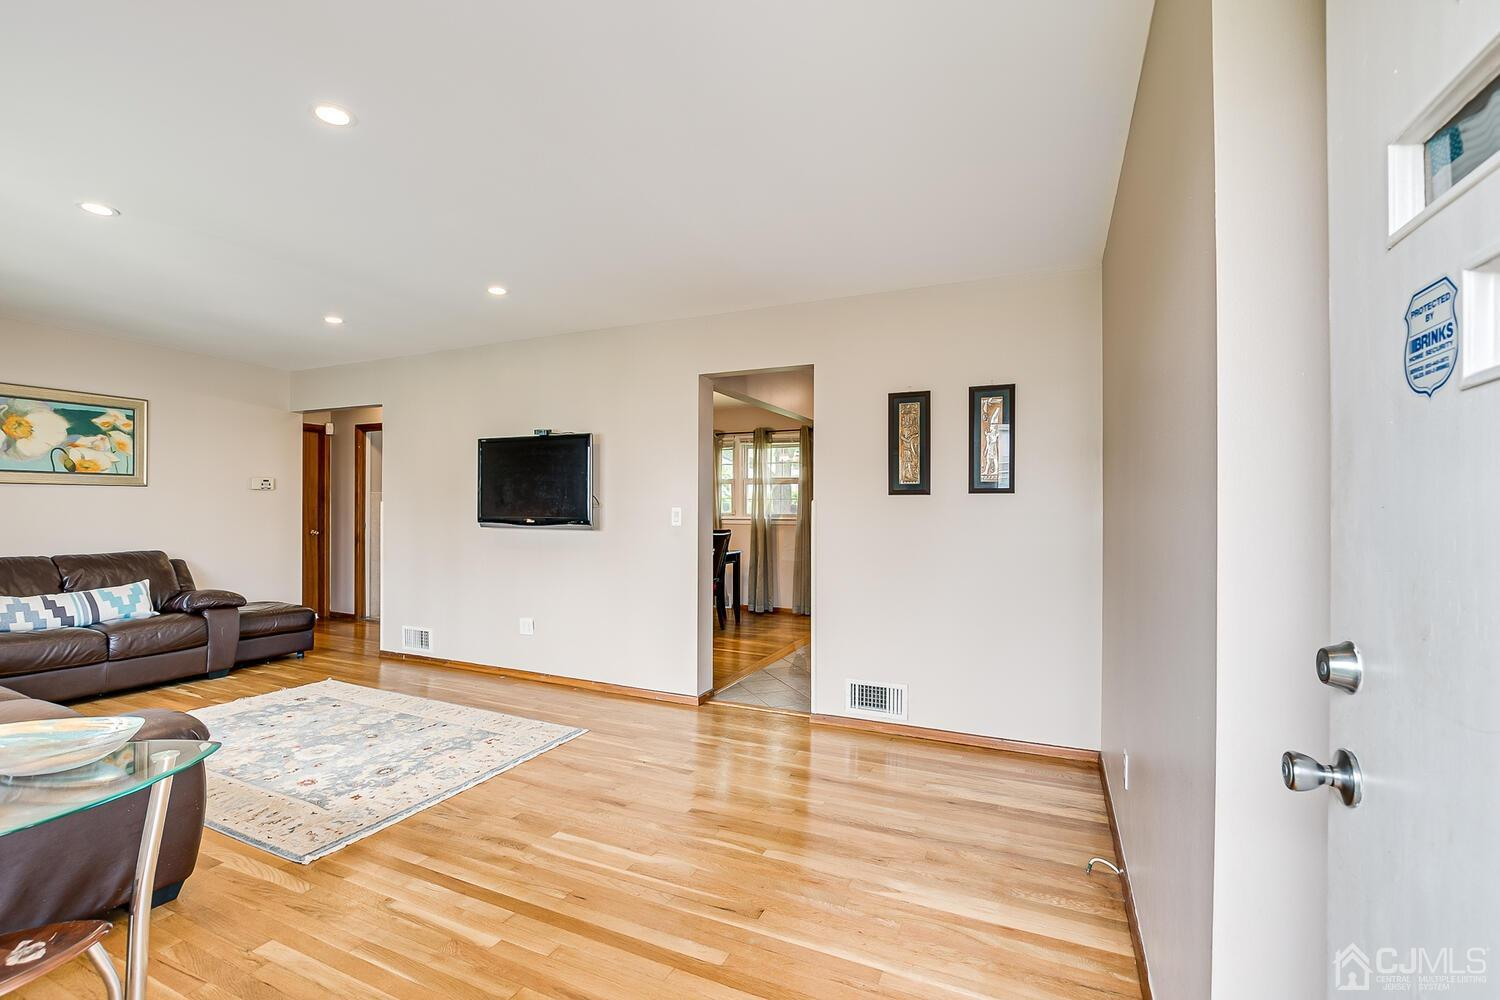 View of the Living Room with Recess lights, Harwood Floors and entrance to Dining Room and Bedrooms.